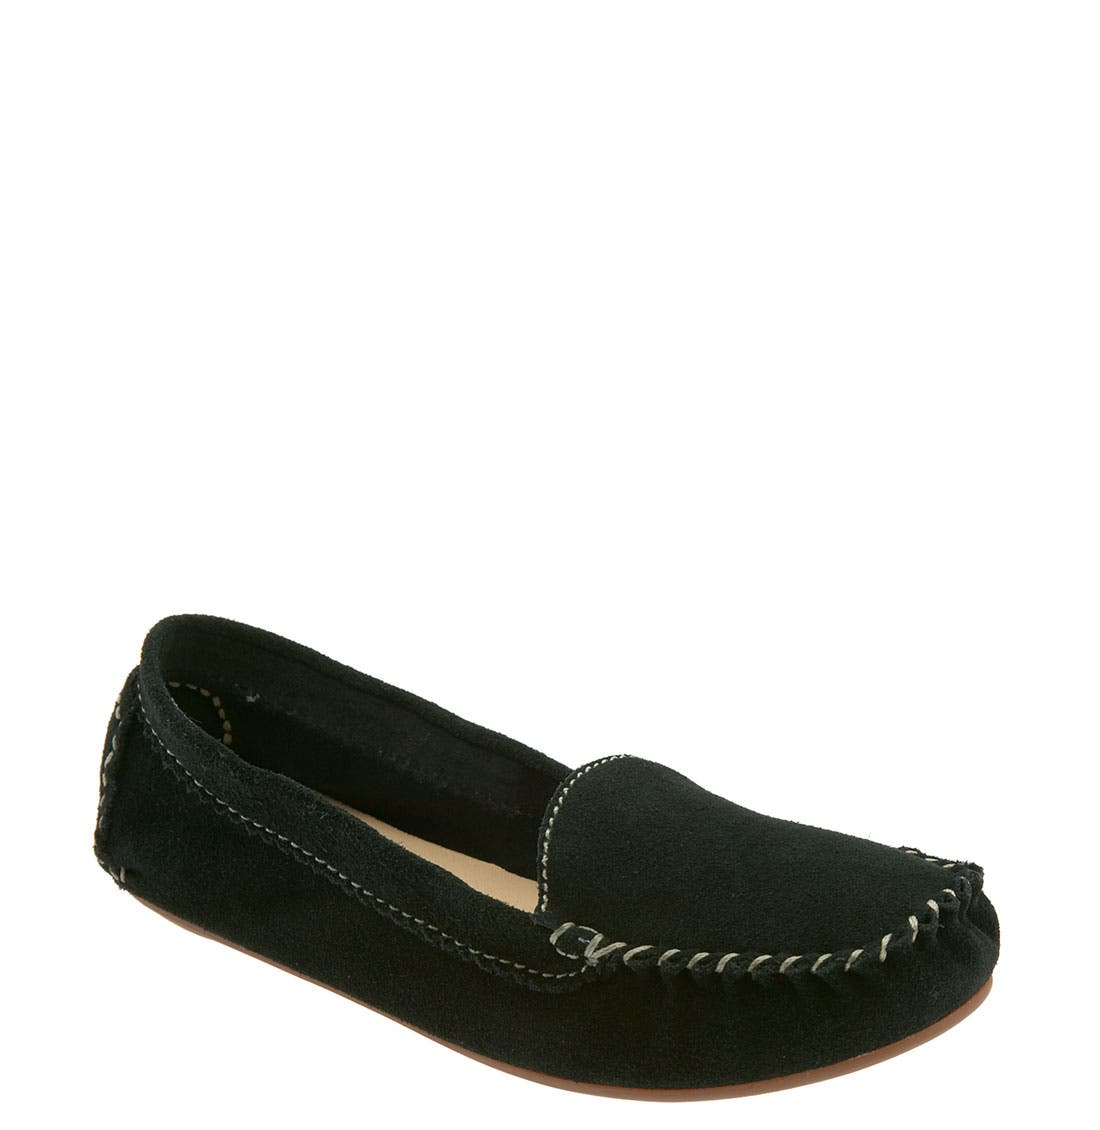 STEVEN BY STEVE MADDEN 'Teepea' Moccasin, Main, color, 006